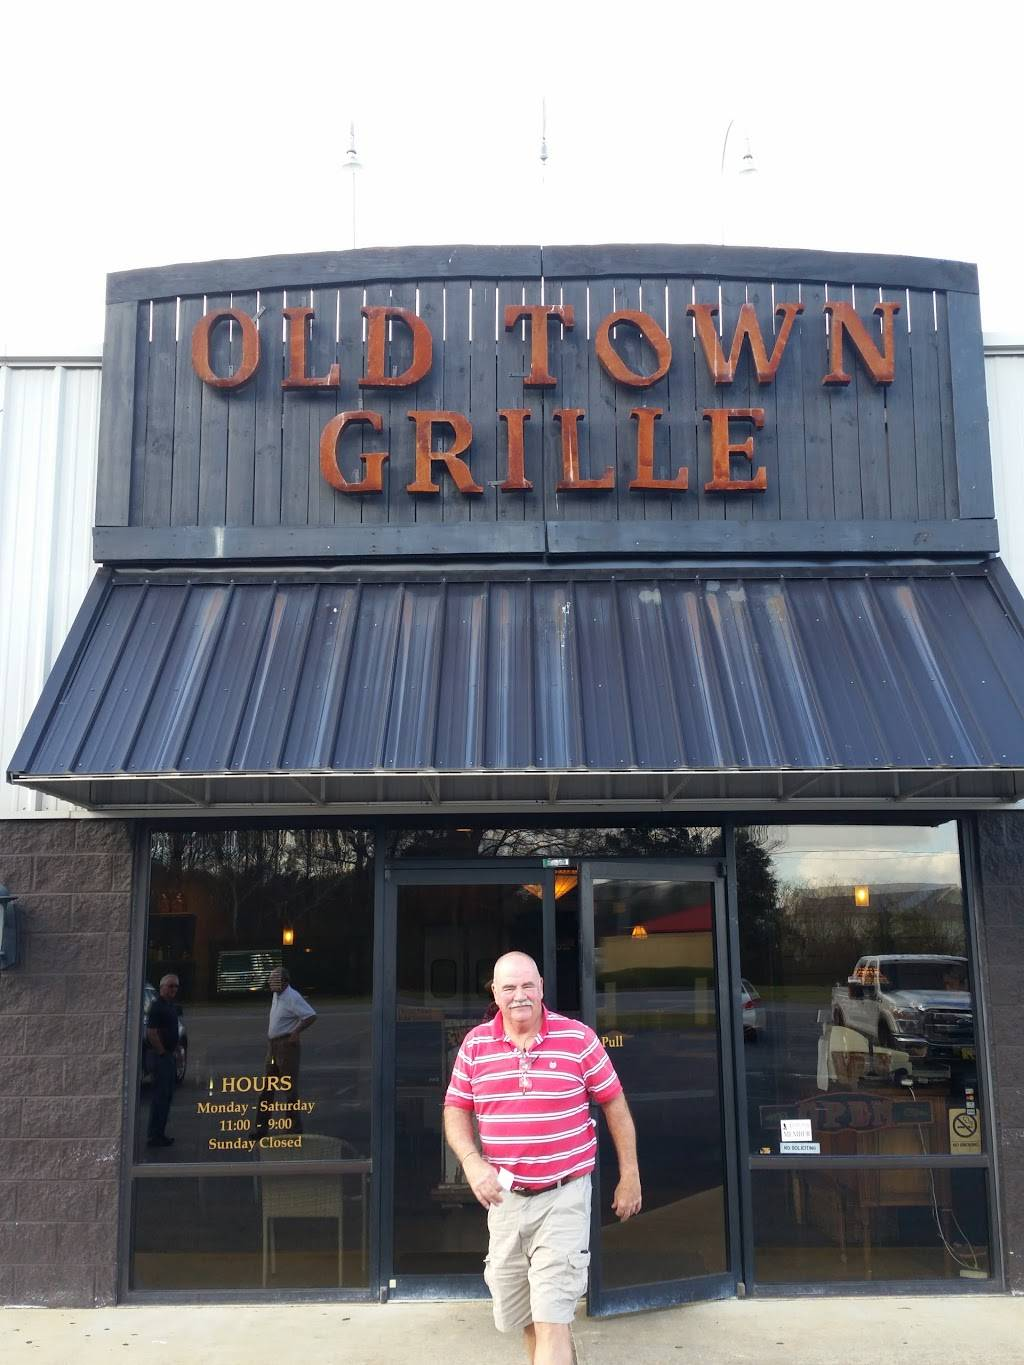 Old Town Grille | restaurant | 50 River Run Rd, Childersburg, AL 35044, USA | 2563785022 OR +1 256-378-5022